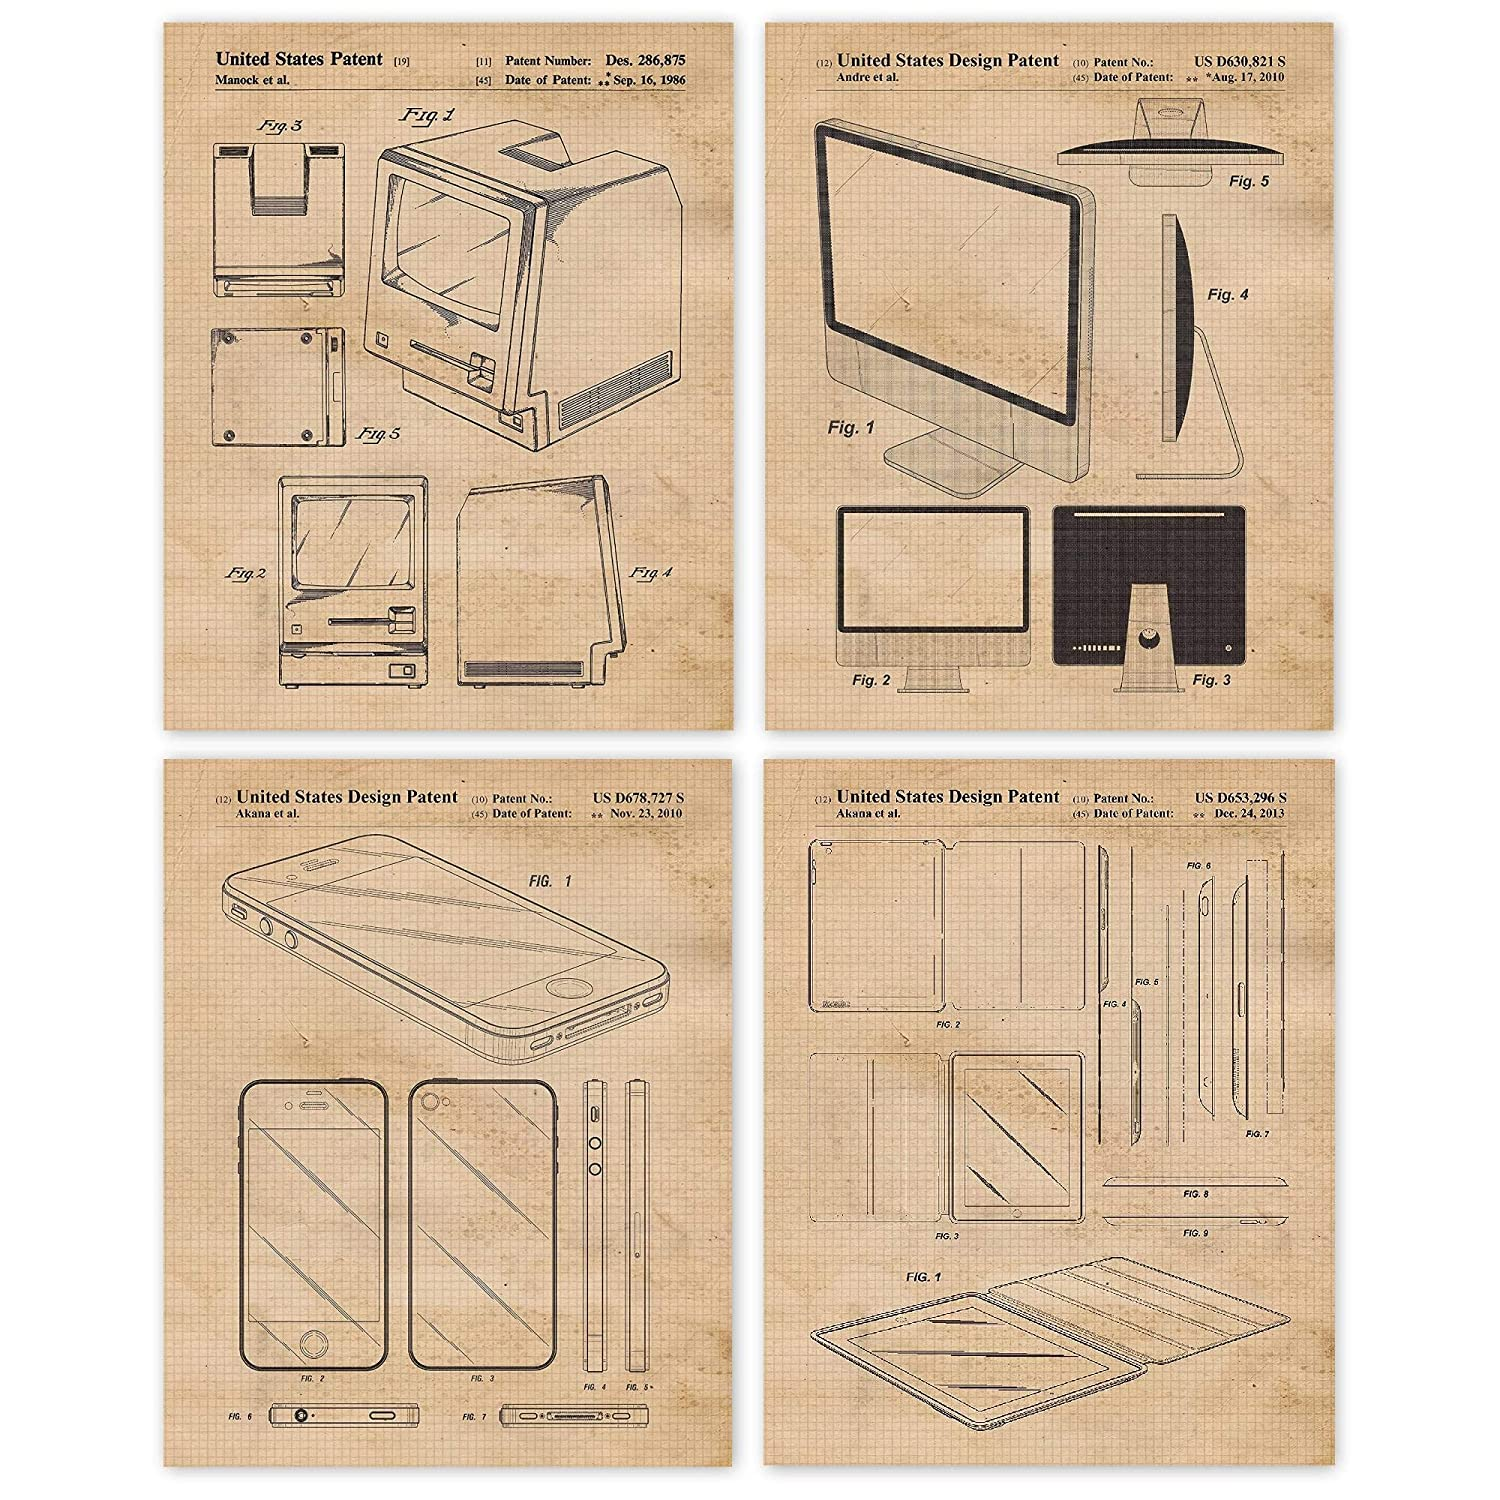 Vintage Steve Jobs Products Patent Poster Prints, Set of 4 (8x10) Unframed Photos, Great Wall Art Decor Gifts Under 20 for Home, Office, Man Cave, Student, Teacher, Smart Computer & Steve Jobs Fan